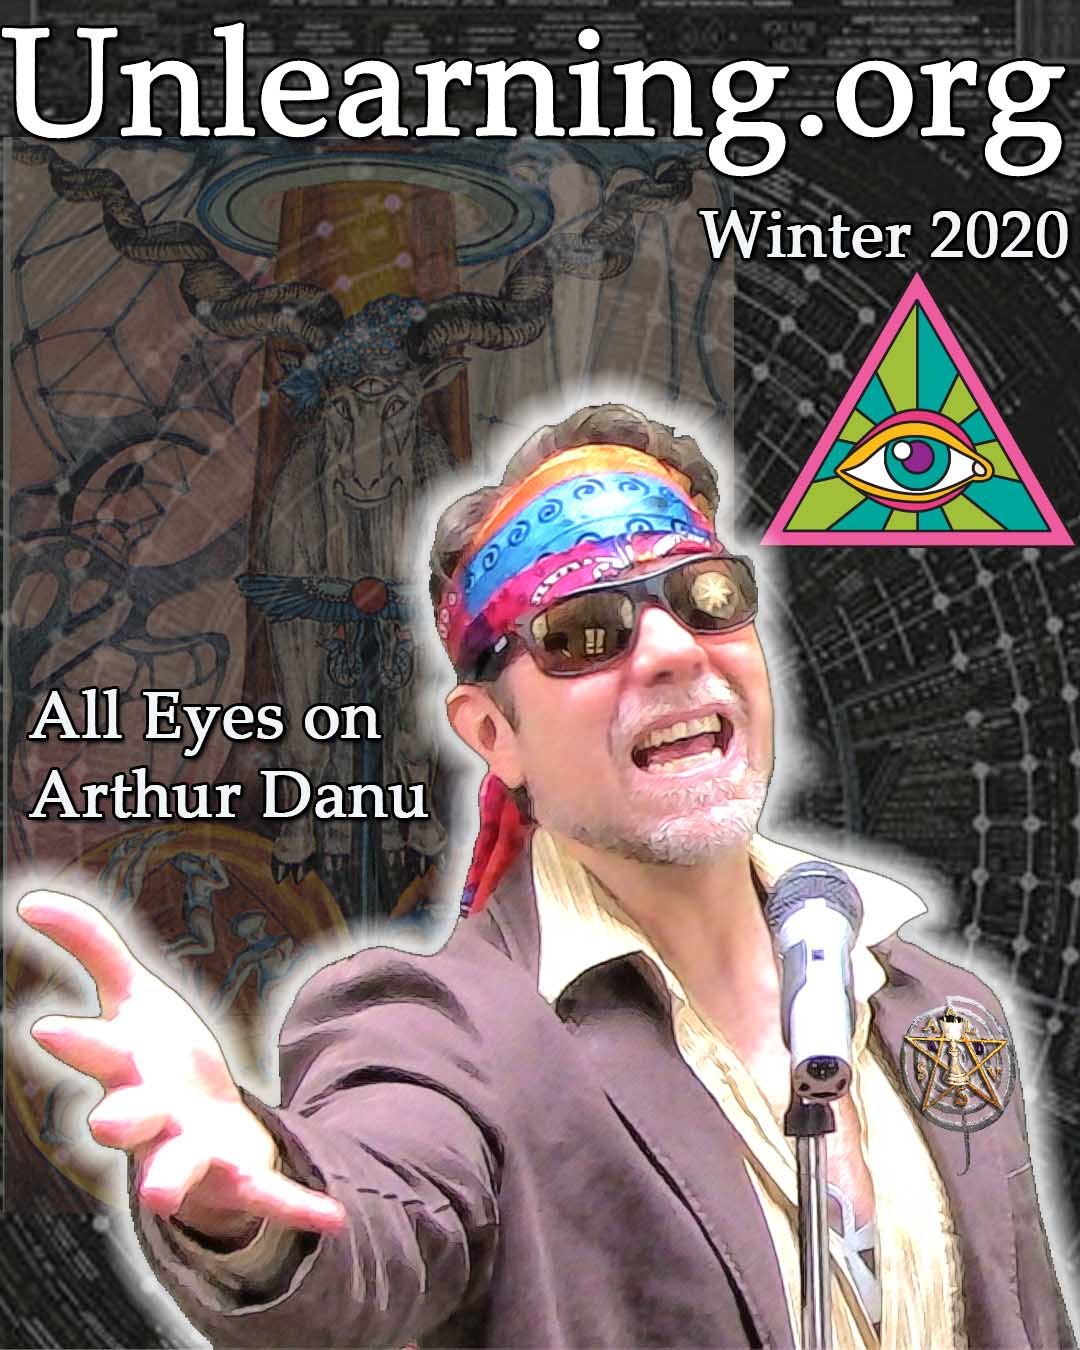 ALL EYES ON ARTHUR DANU